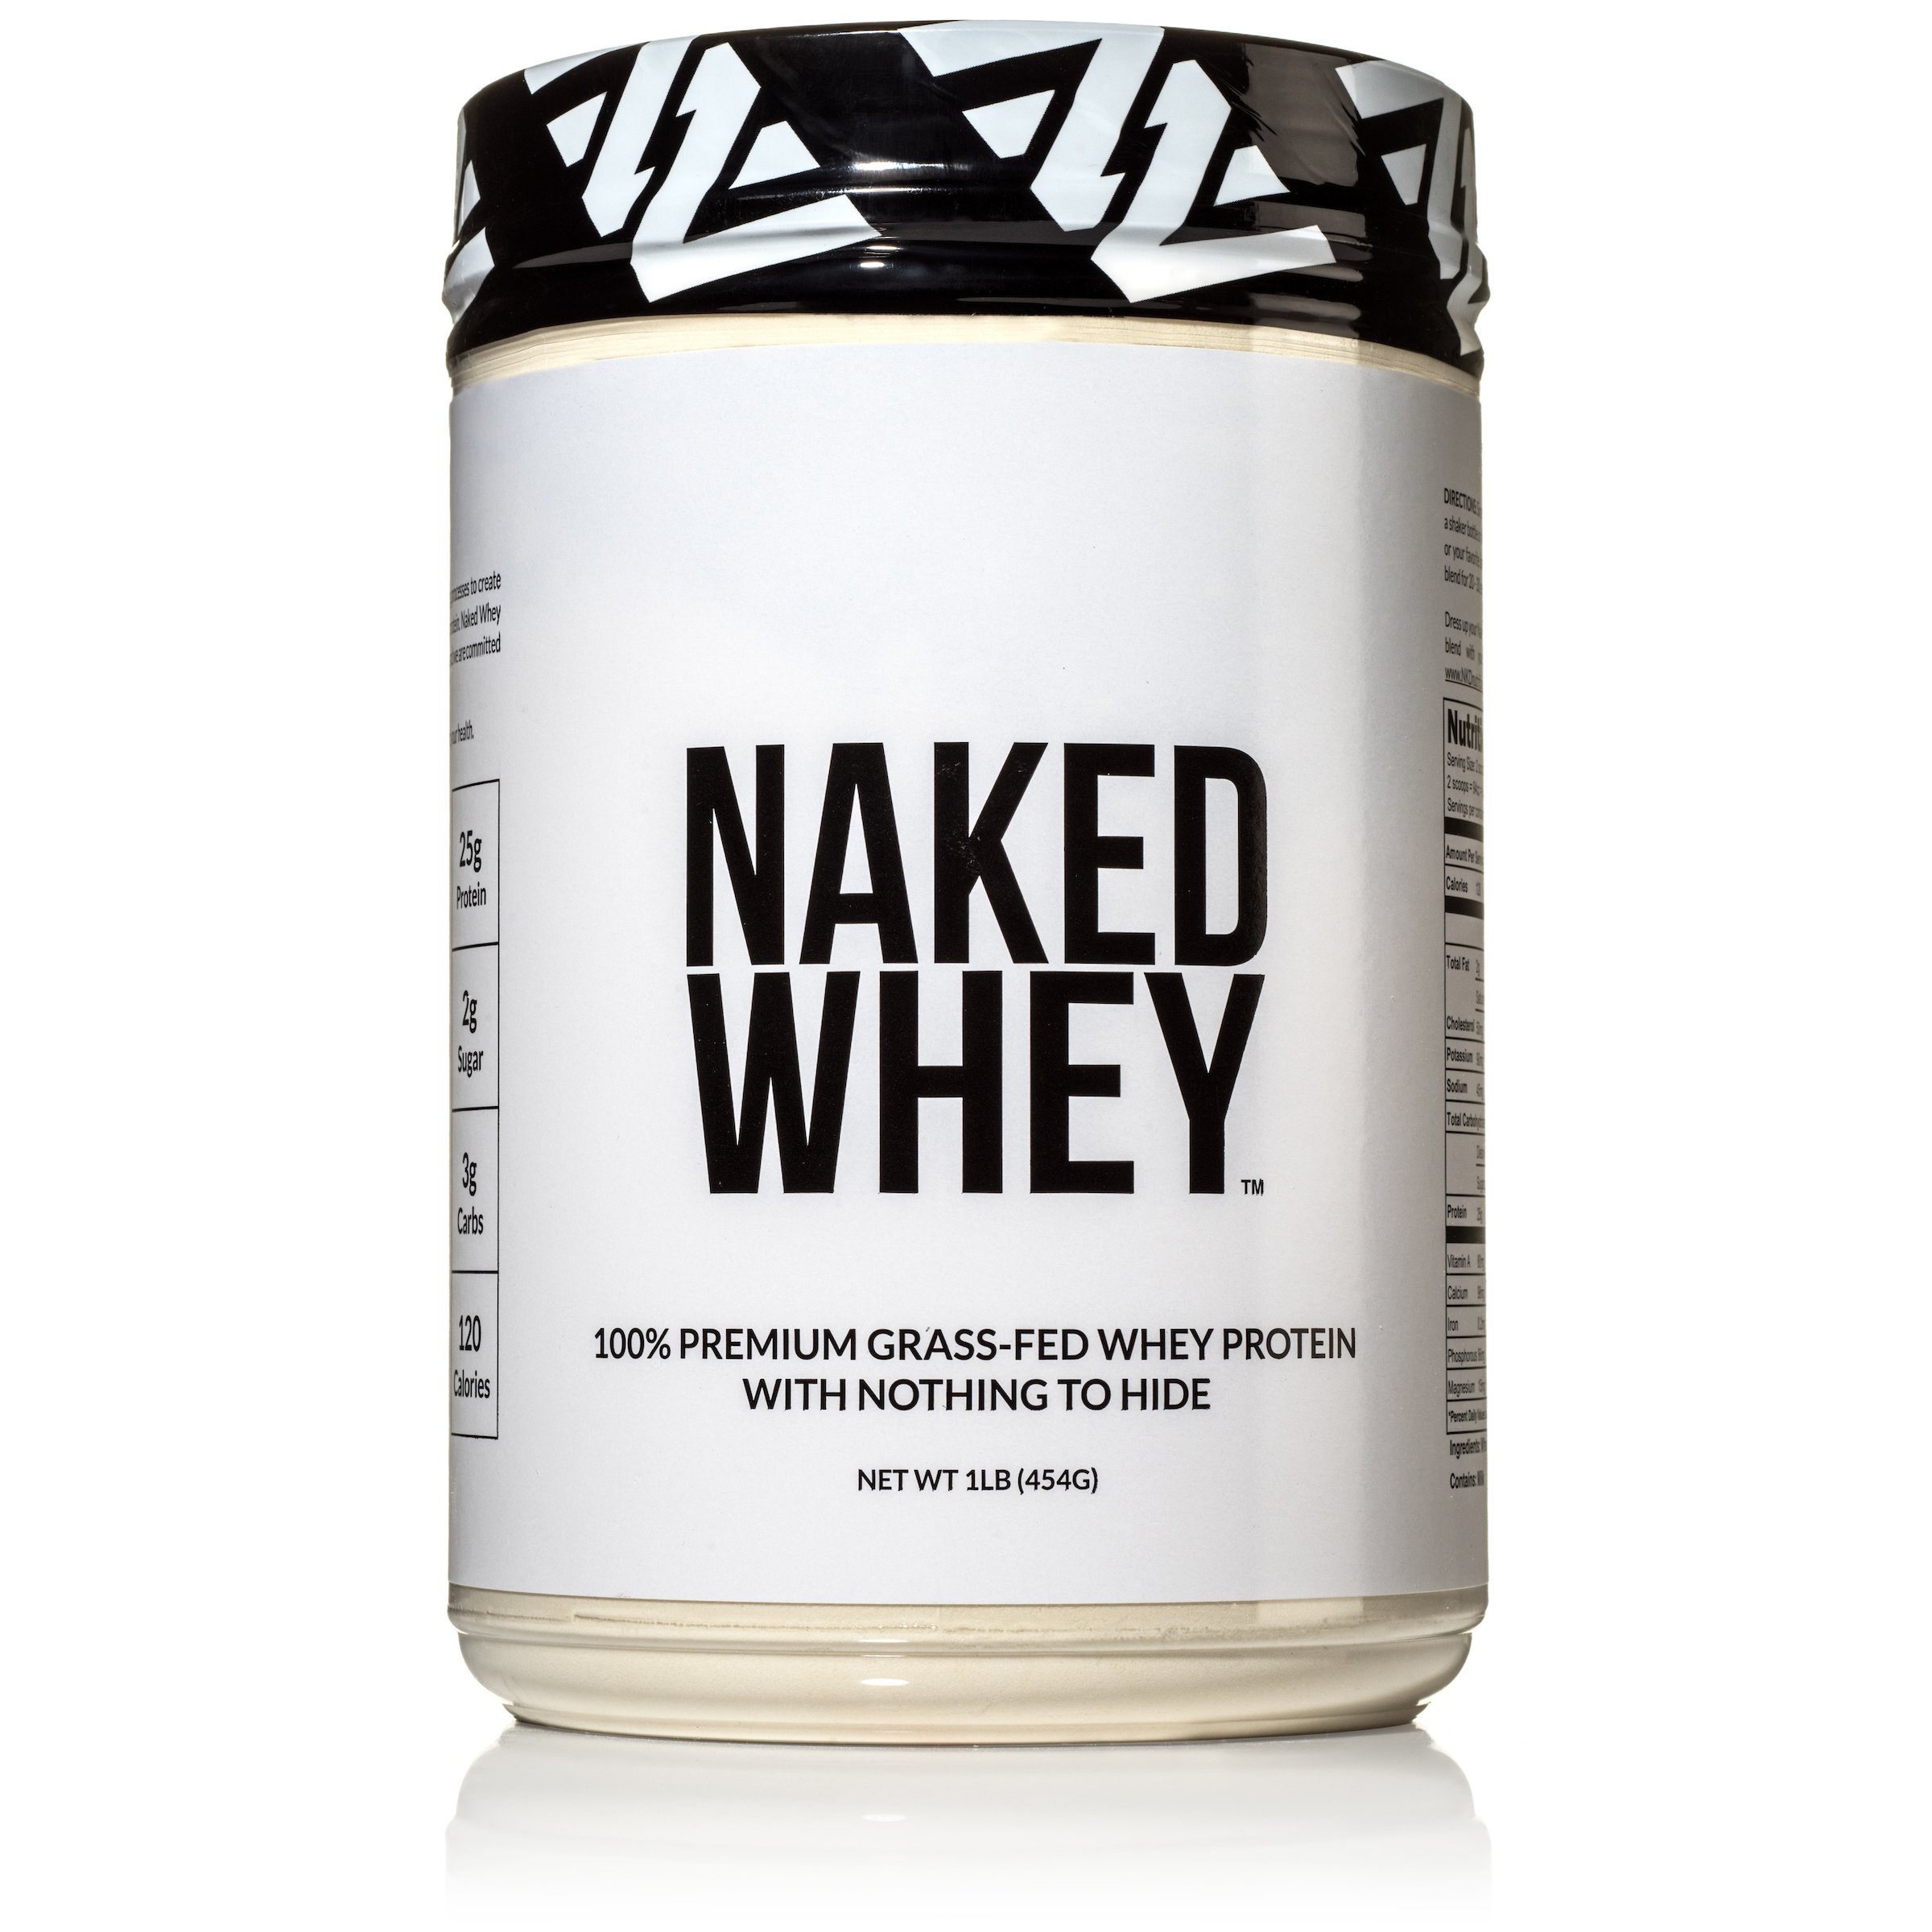 NAKED WHEY 1LB #1 Undenatured 100% Grass Fed Whey Protein Powder - US Farms, Bulk, Unflavored - GMO, Soy, and Gluten Free - No Preservatives - Stimulate Muscle Growth - Enhance Recovery - 15 Servings